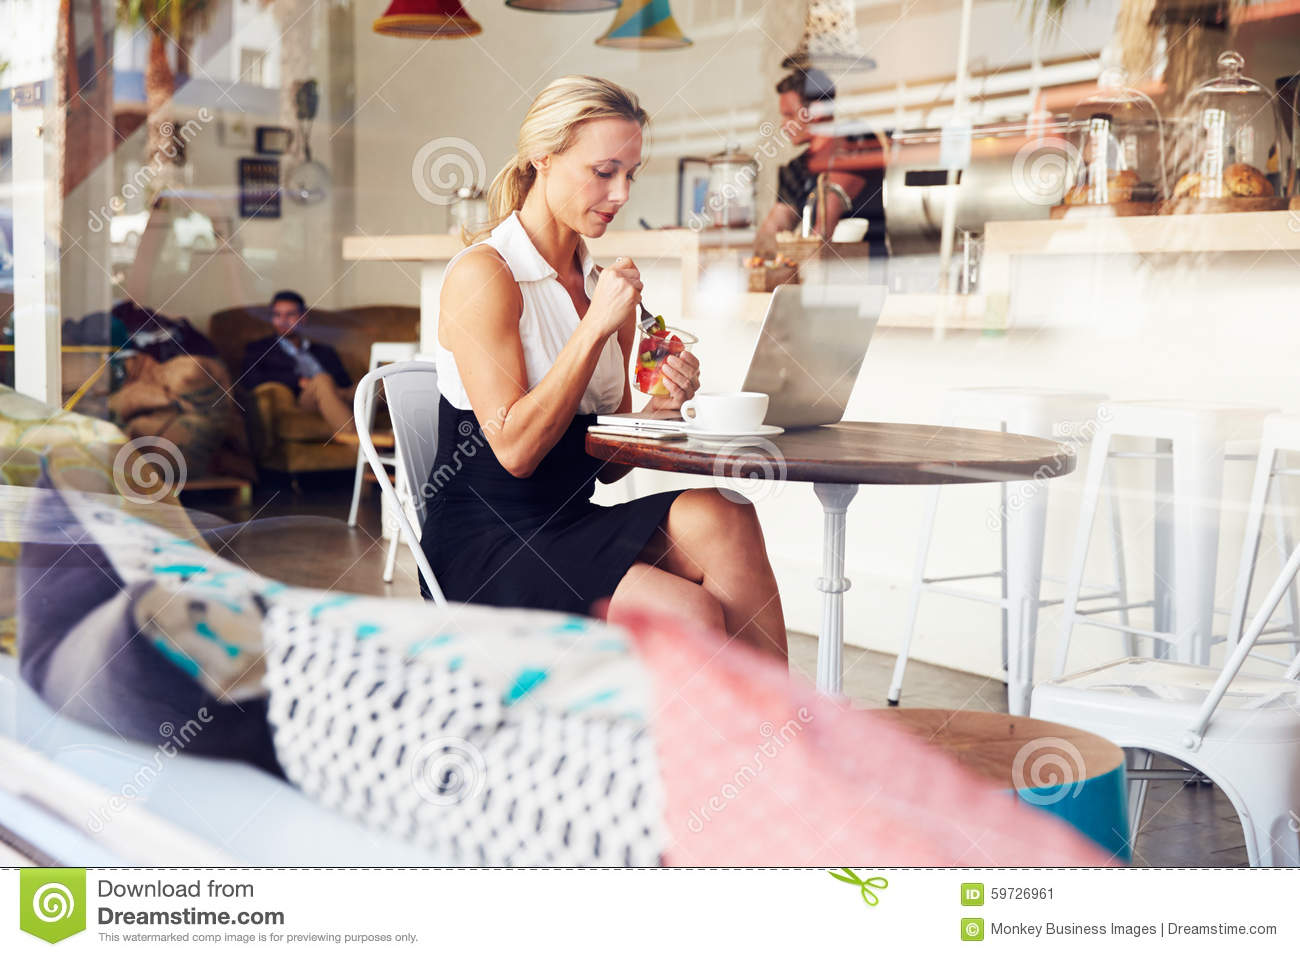 Business Woman Sitting At A Table In Small Coffee Shop Stock Image ... e1fb2ce0f